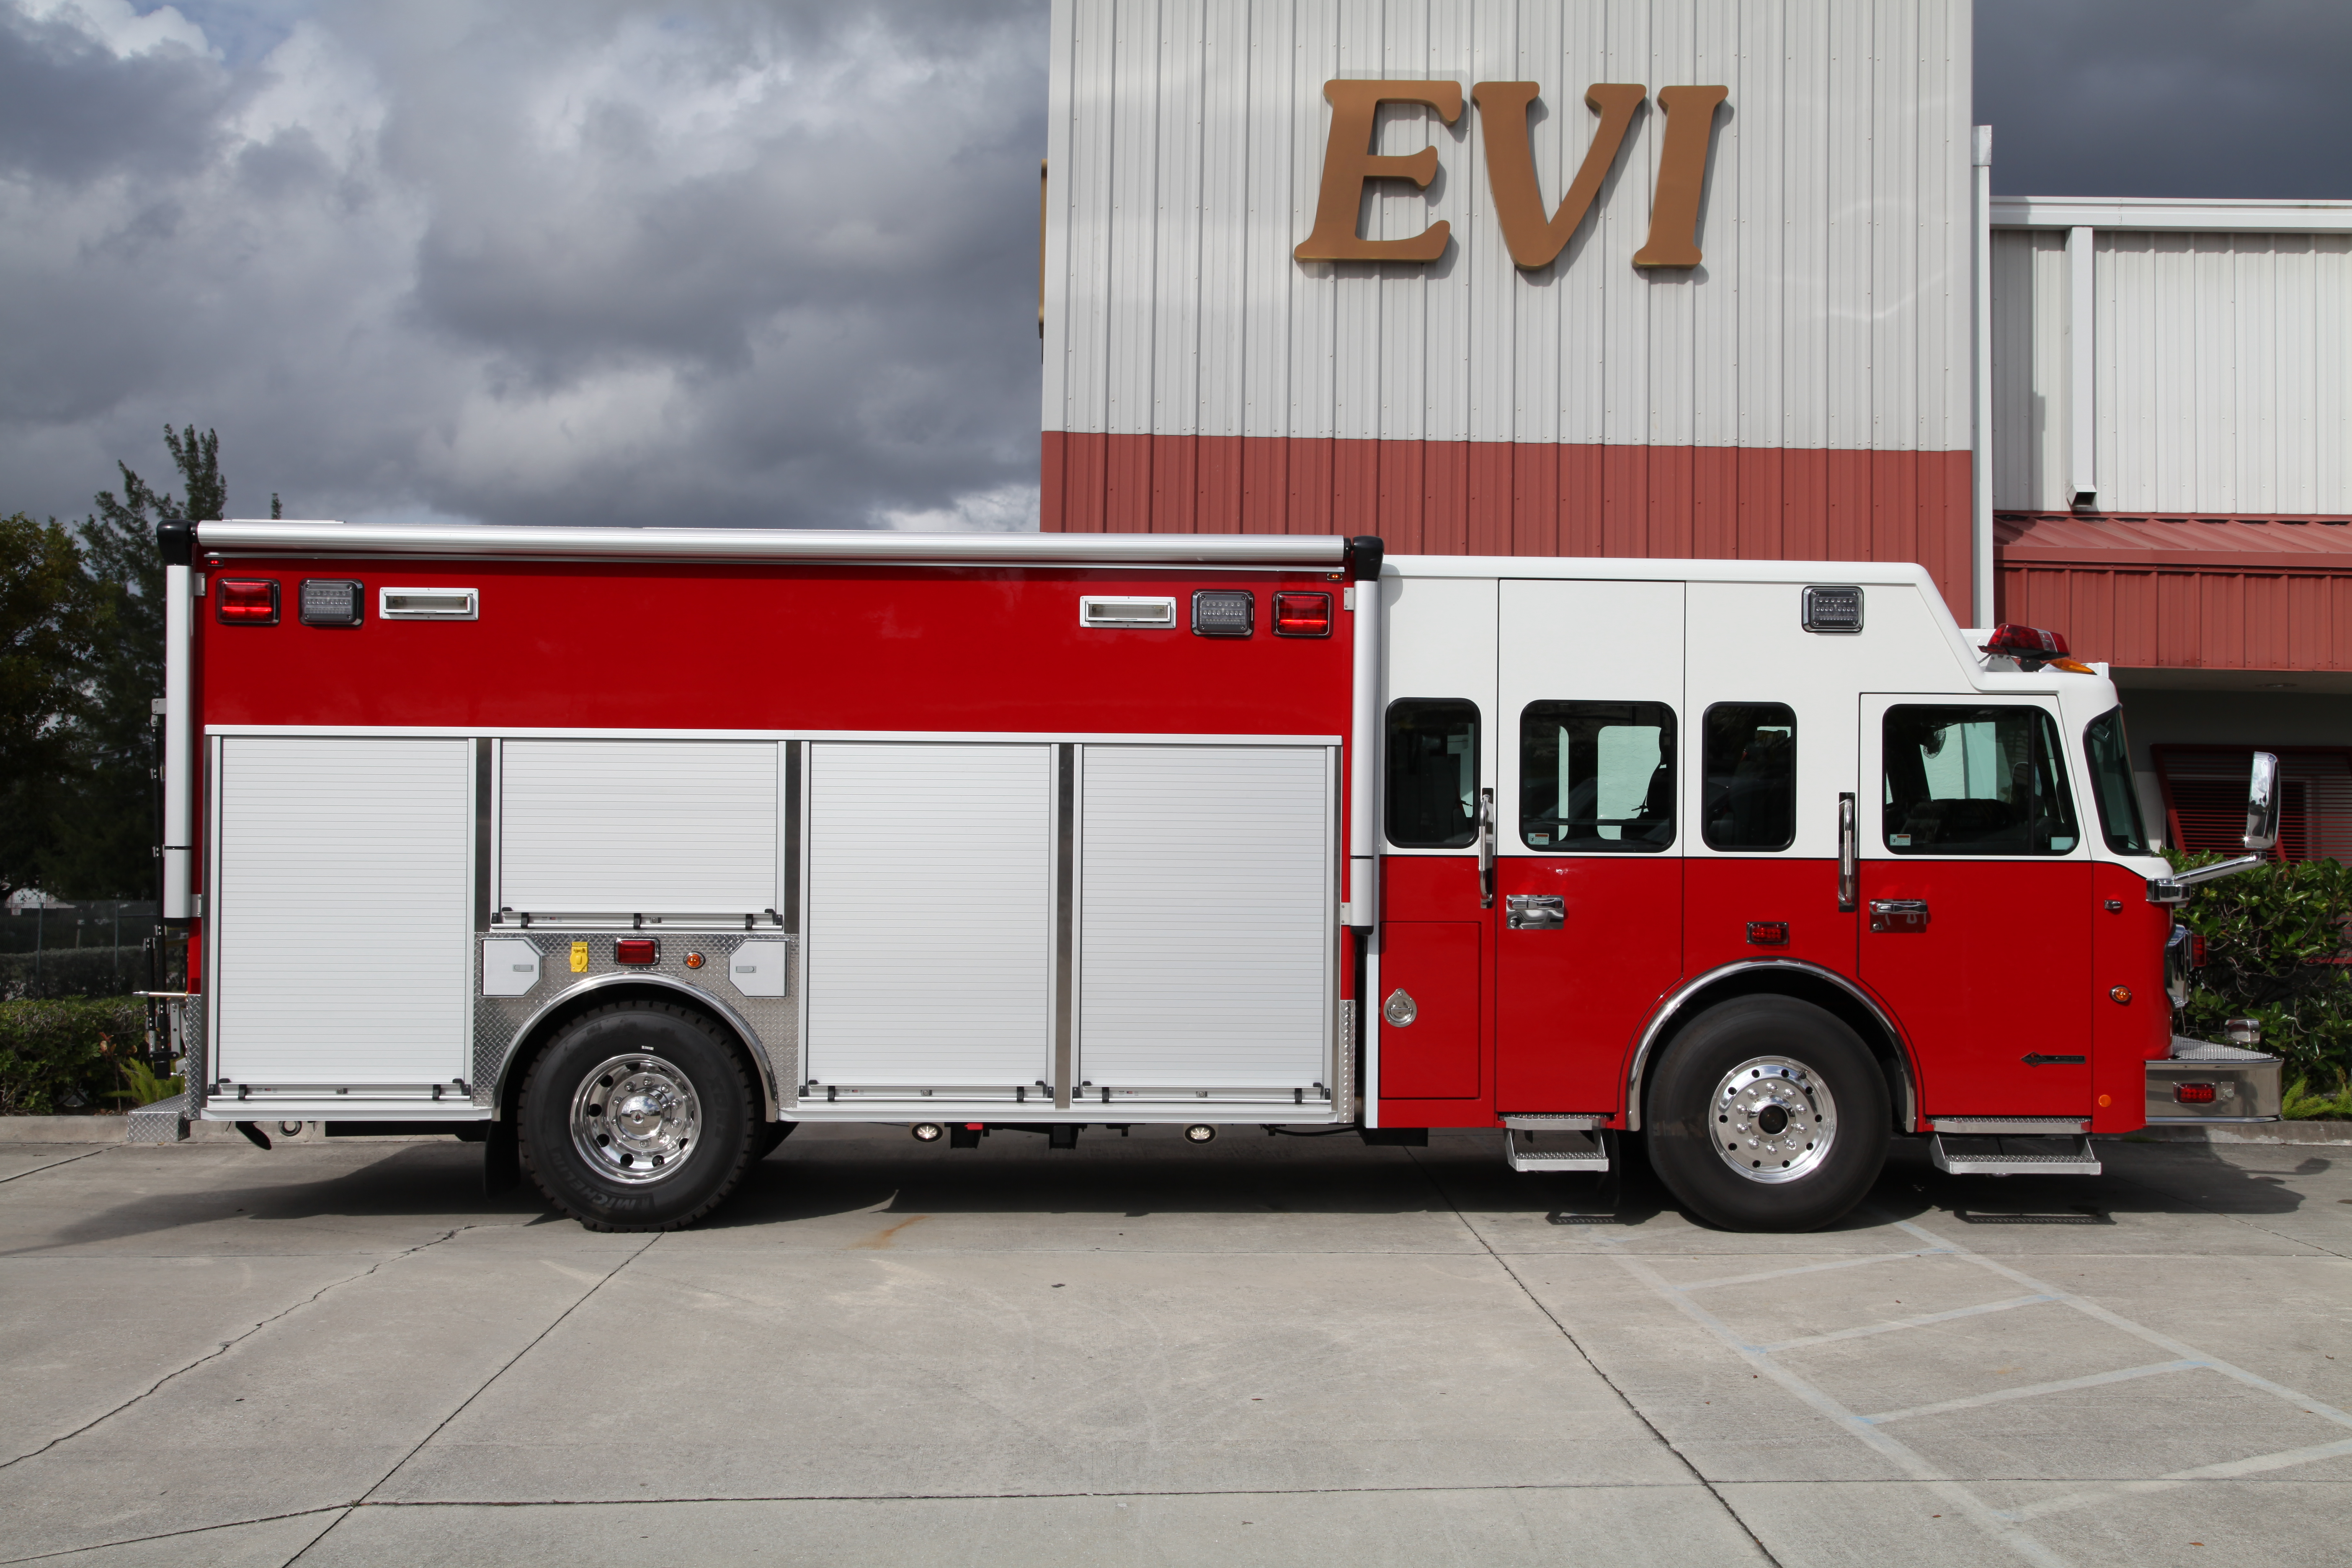 17-Ft. Non-Walk-In Rescue Truck